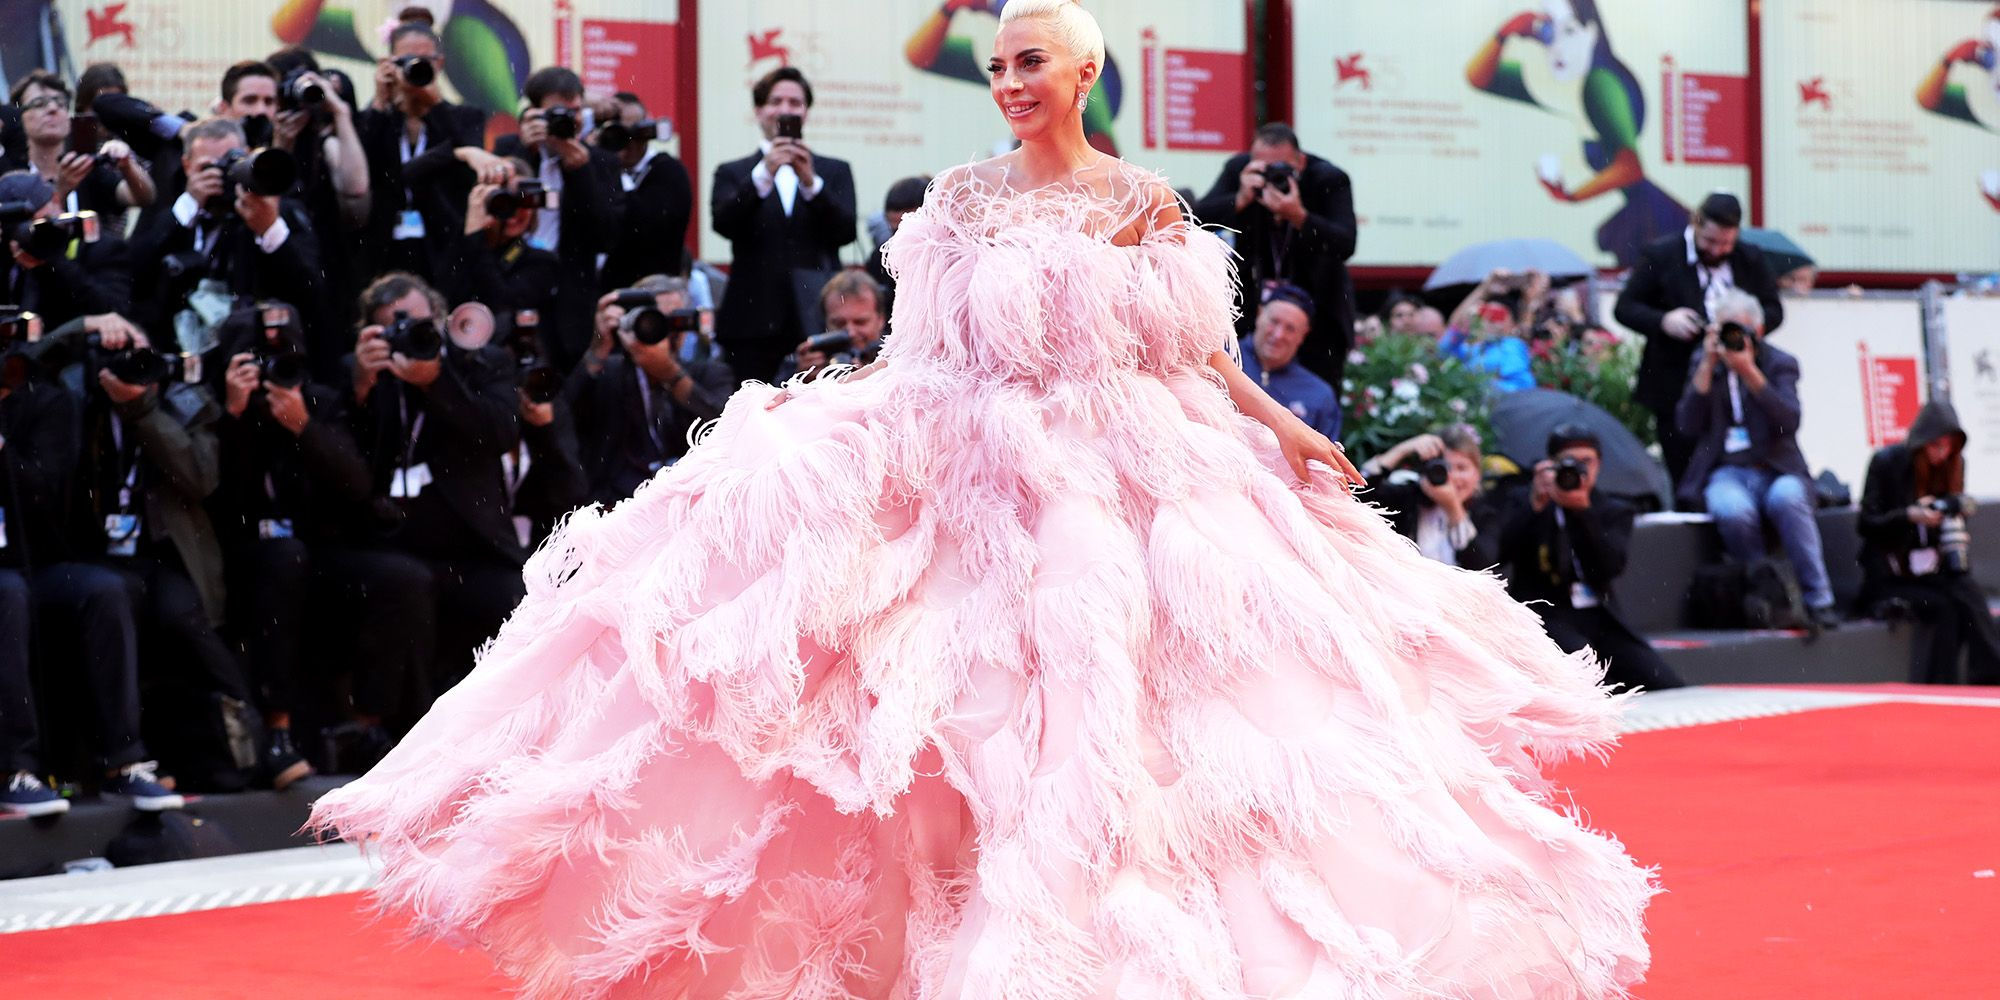 86f2151392d4 Lady Gaga Wears Giant Pink Gown to Venice Film Festival's A Star Is Born  Premiere